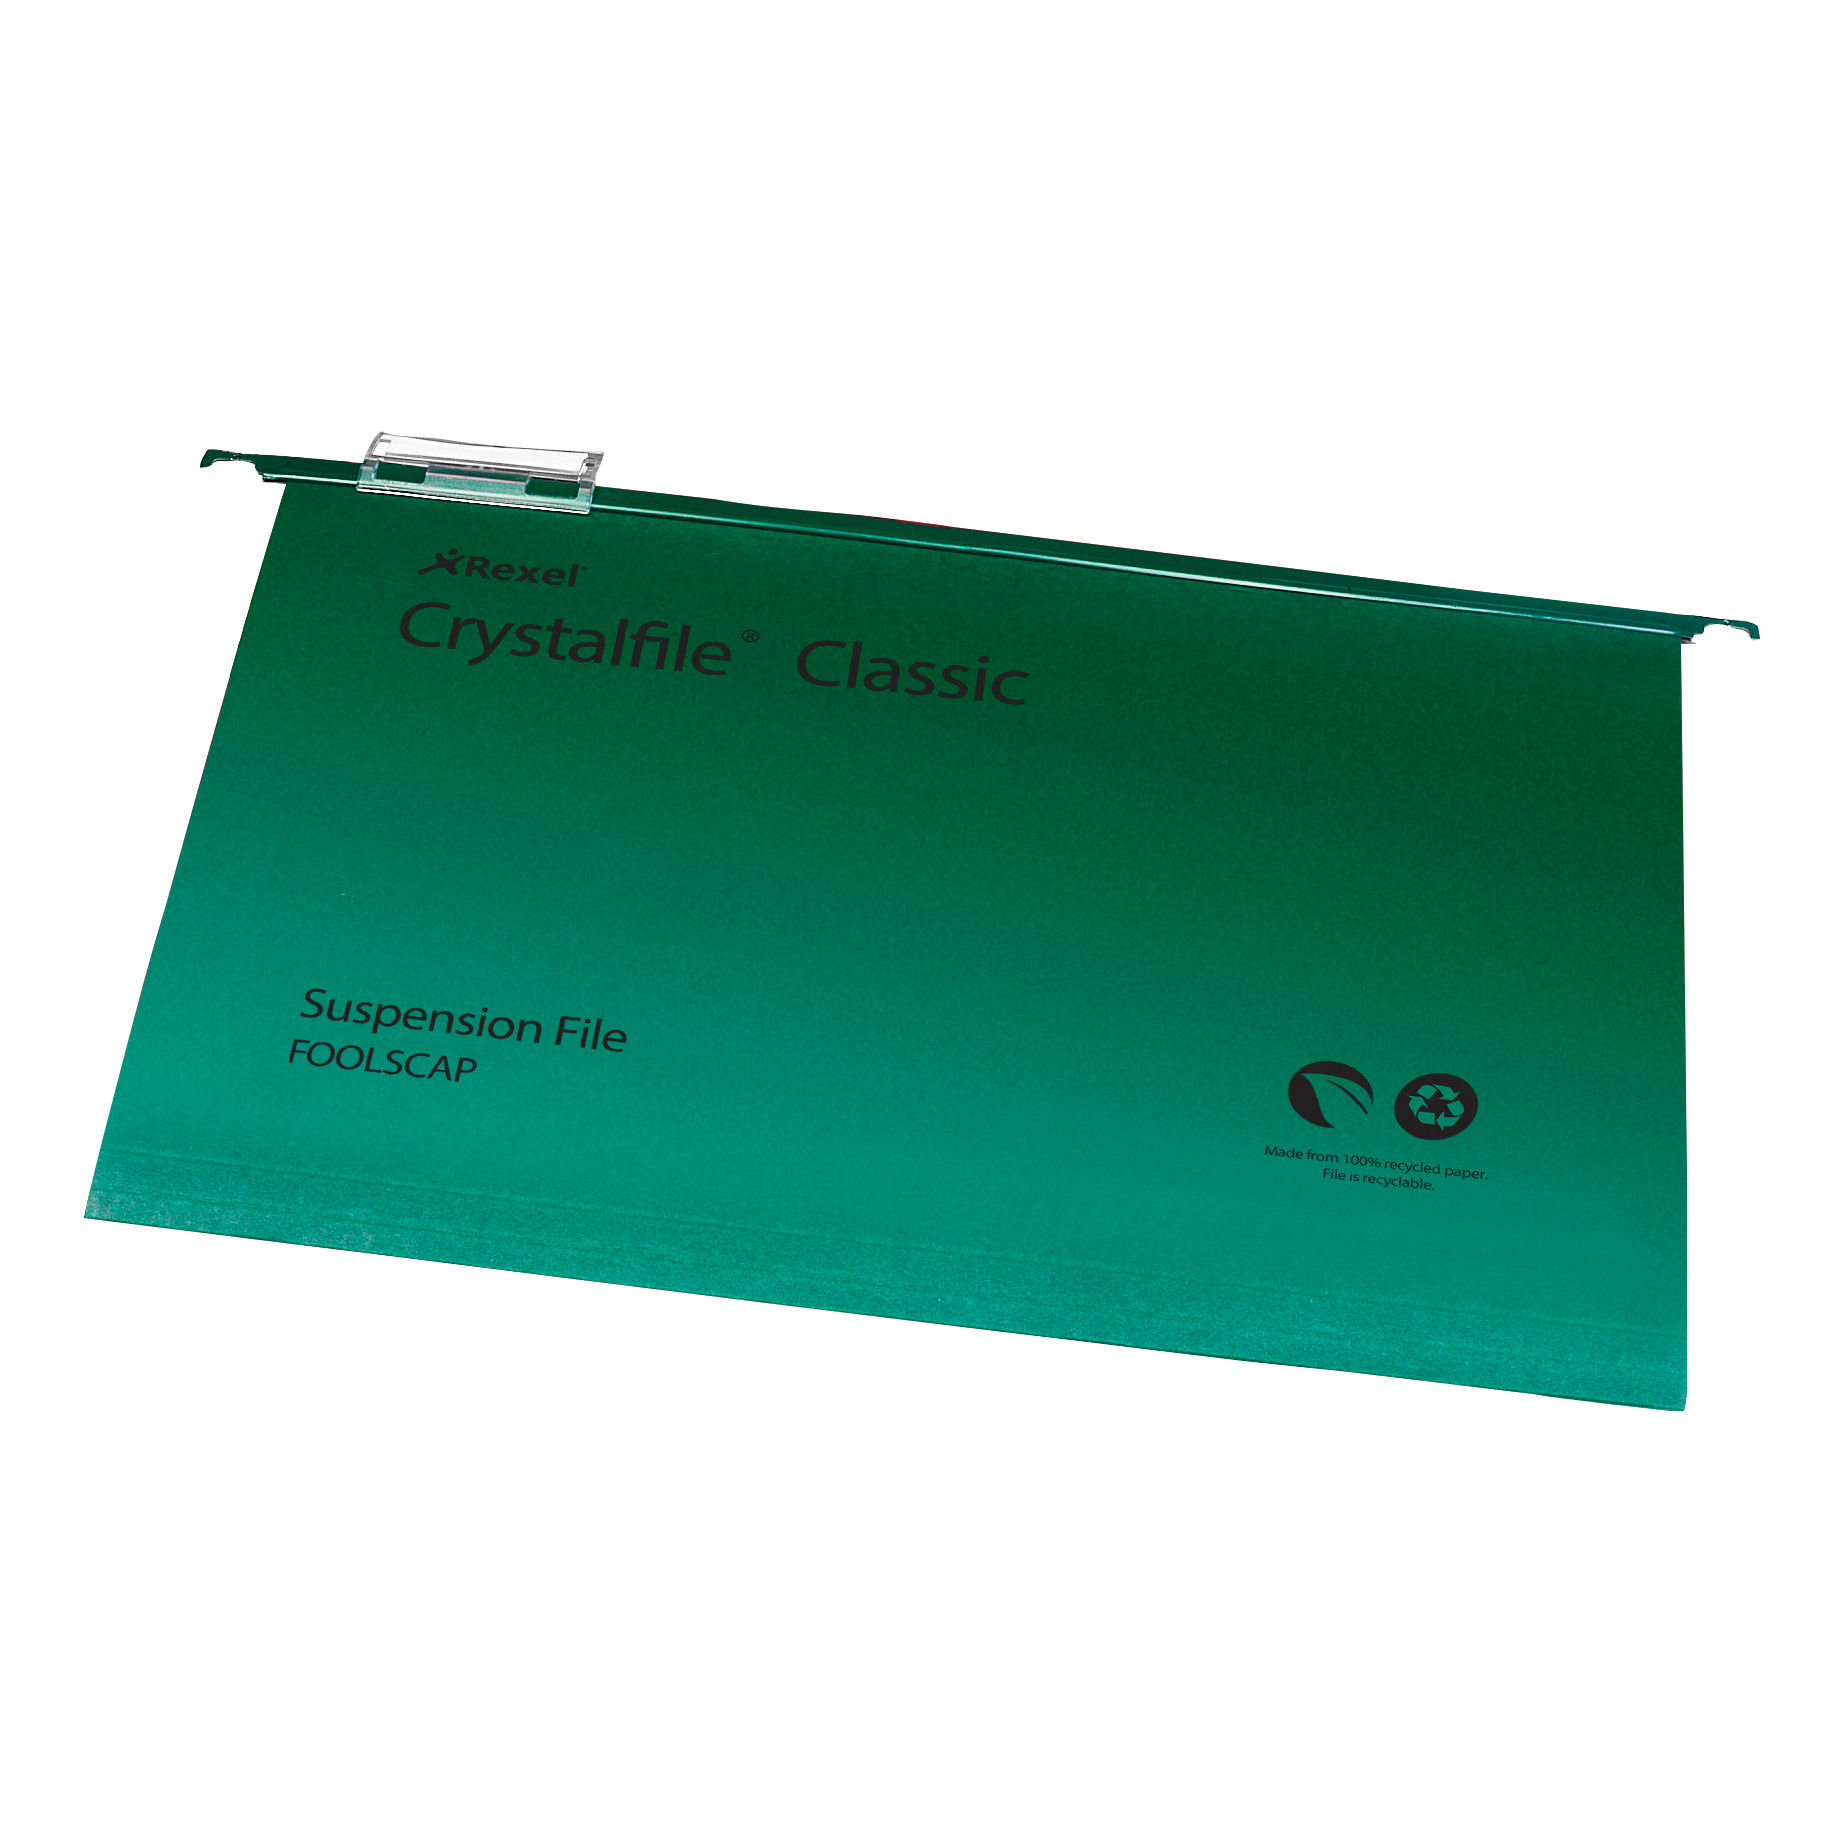 Rexel Crystalfile Classic Suspension File Manilla V-base 15mm Foolscap Green Ref 78046 [Pack 50]